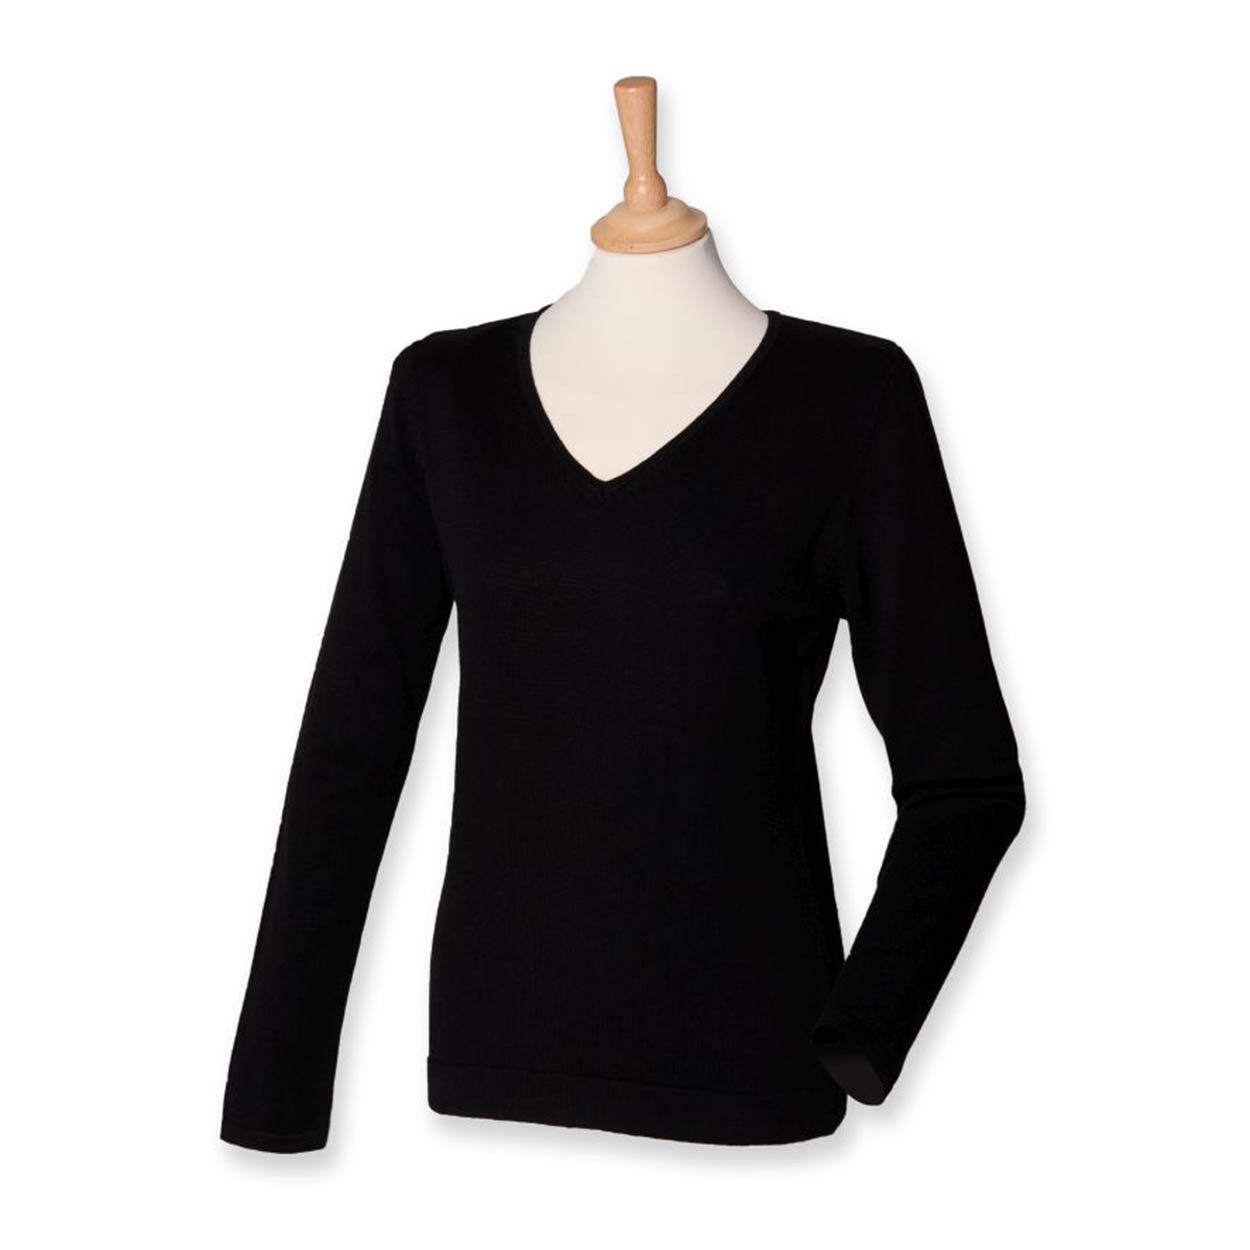 hot-selling clearance newest style classic shoes Henbury H721 Ladies V Neck Sweater - Women's Knitwear ...